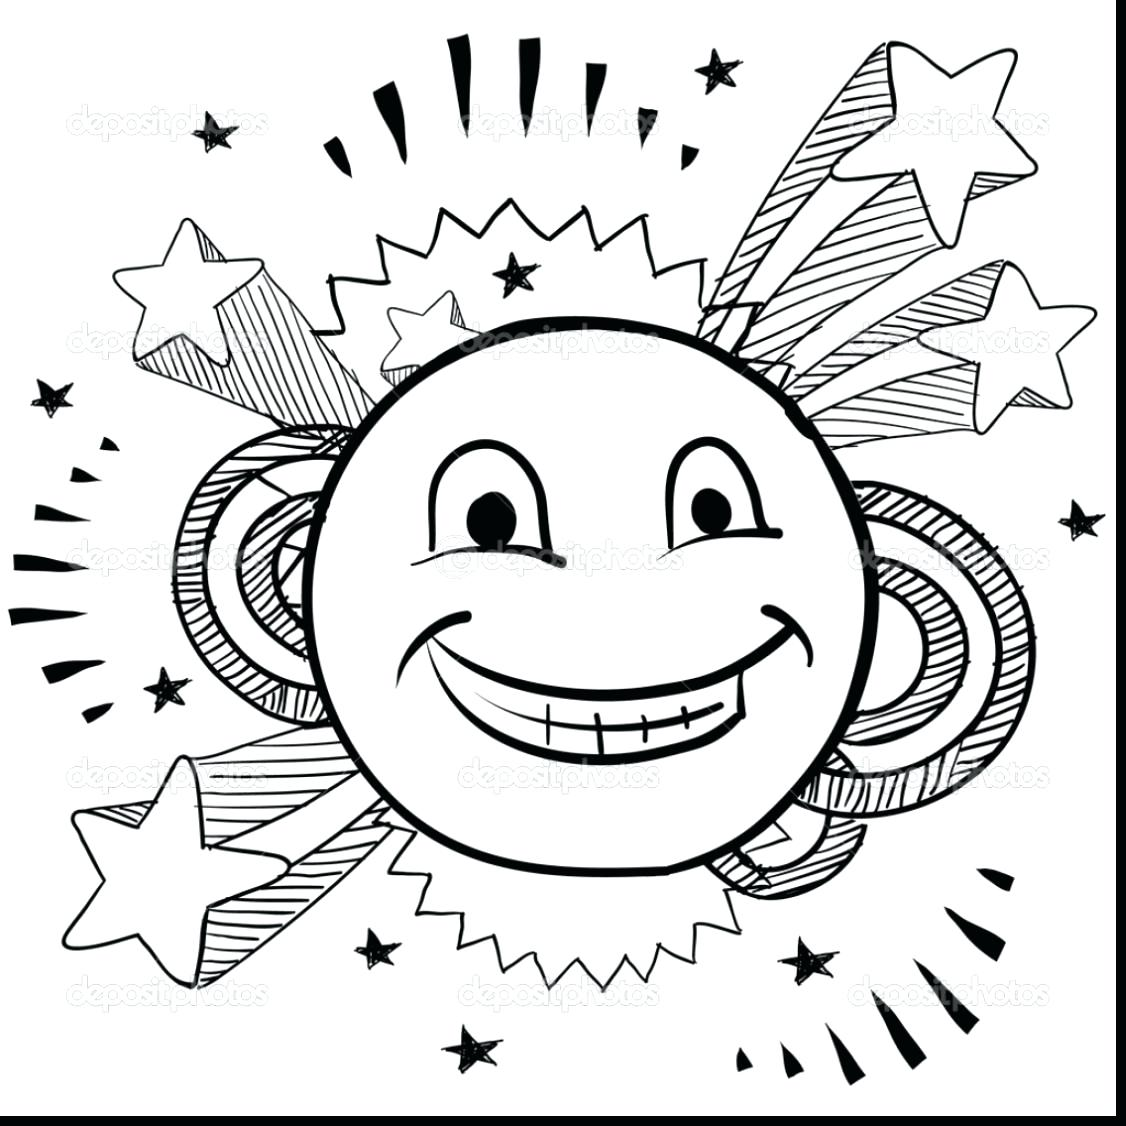 1126x1126 Free Printable Smiley Face Coloring Pages For Kids With Regard